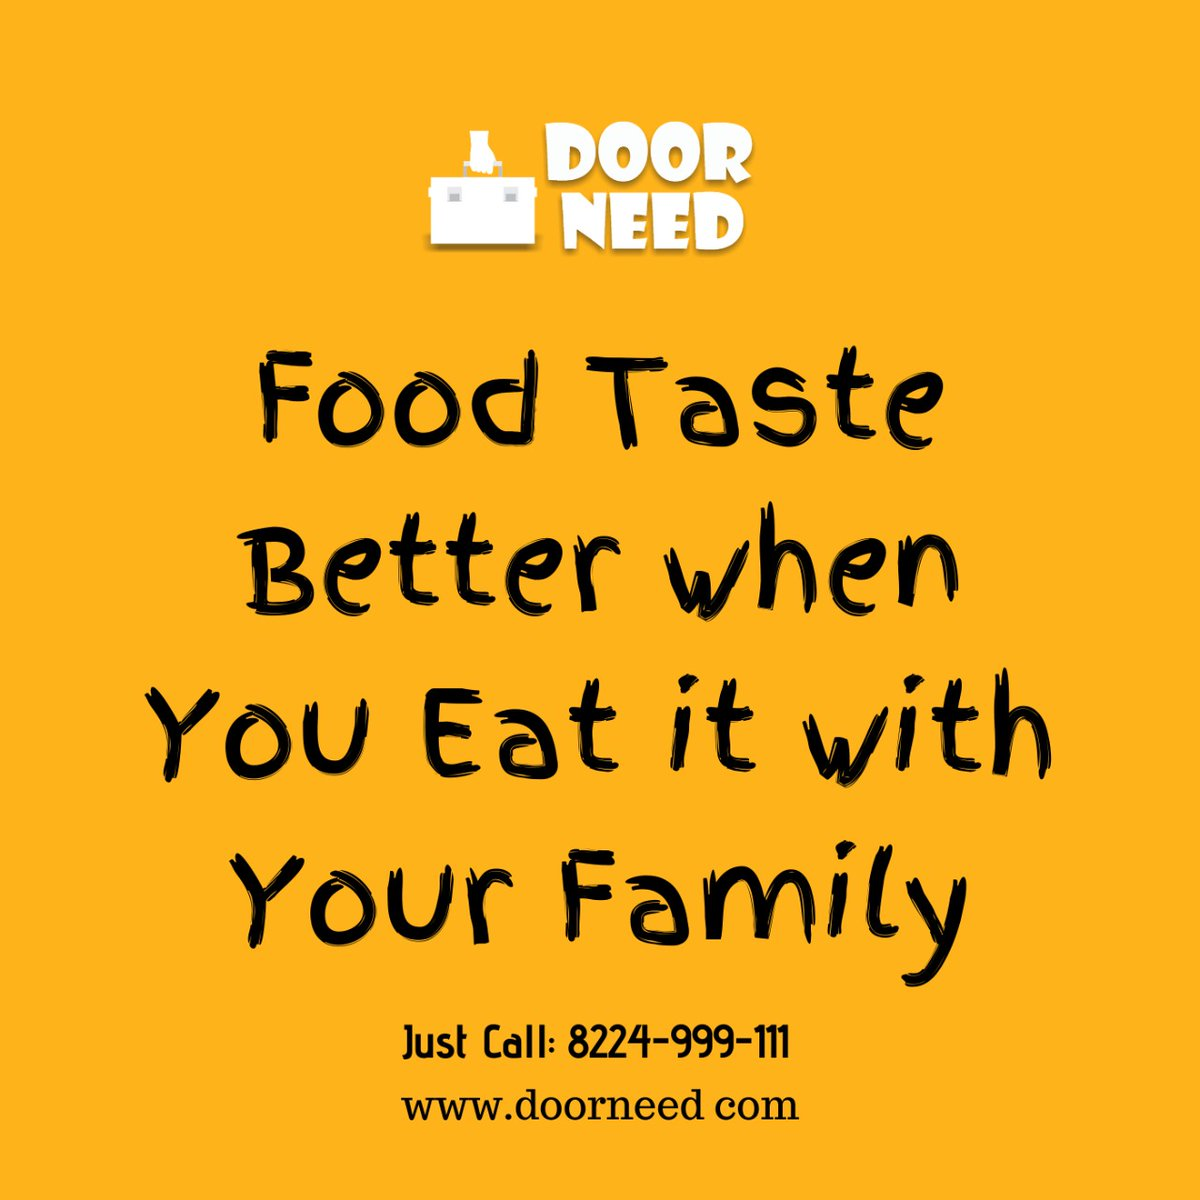 😋Food Taste😊 Better When 😘You Eat it with🍝 your Family!! just call:  8224-999-111    #doorneed😊 #food #delivery🛵 #services #favoritefood🥘 #restaurants👌 #delicious #taste😋 #yummy #doorstap🏠 #eat #better #localdelivery 💐#flower #cakes🎂 #ordernow